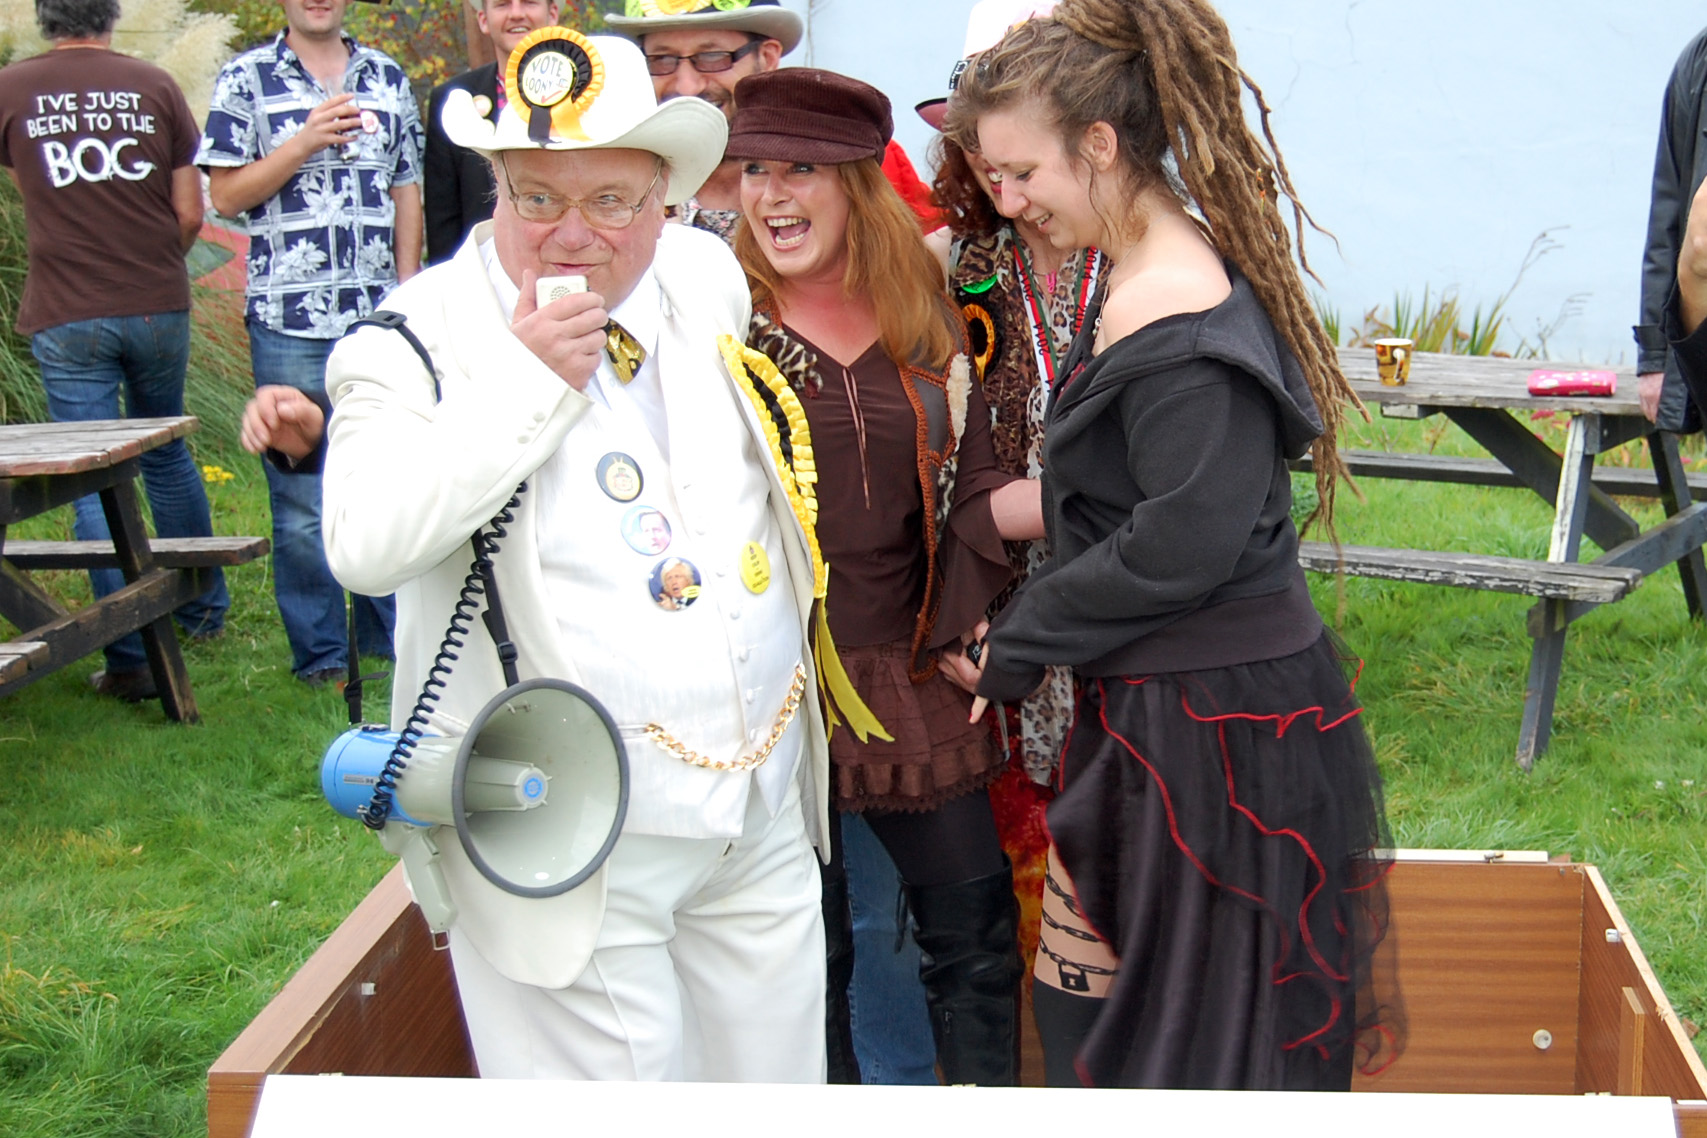 http://www.loonyparty.com/wp-content/uploads/2014/09/2014_6934_Ridgebourne_Llandrindod_Wells_27_Sep.jpg